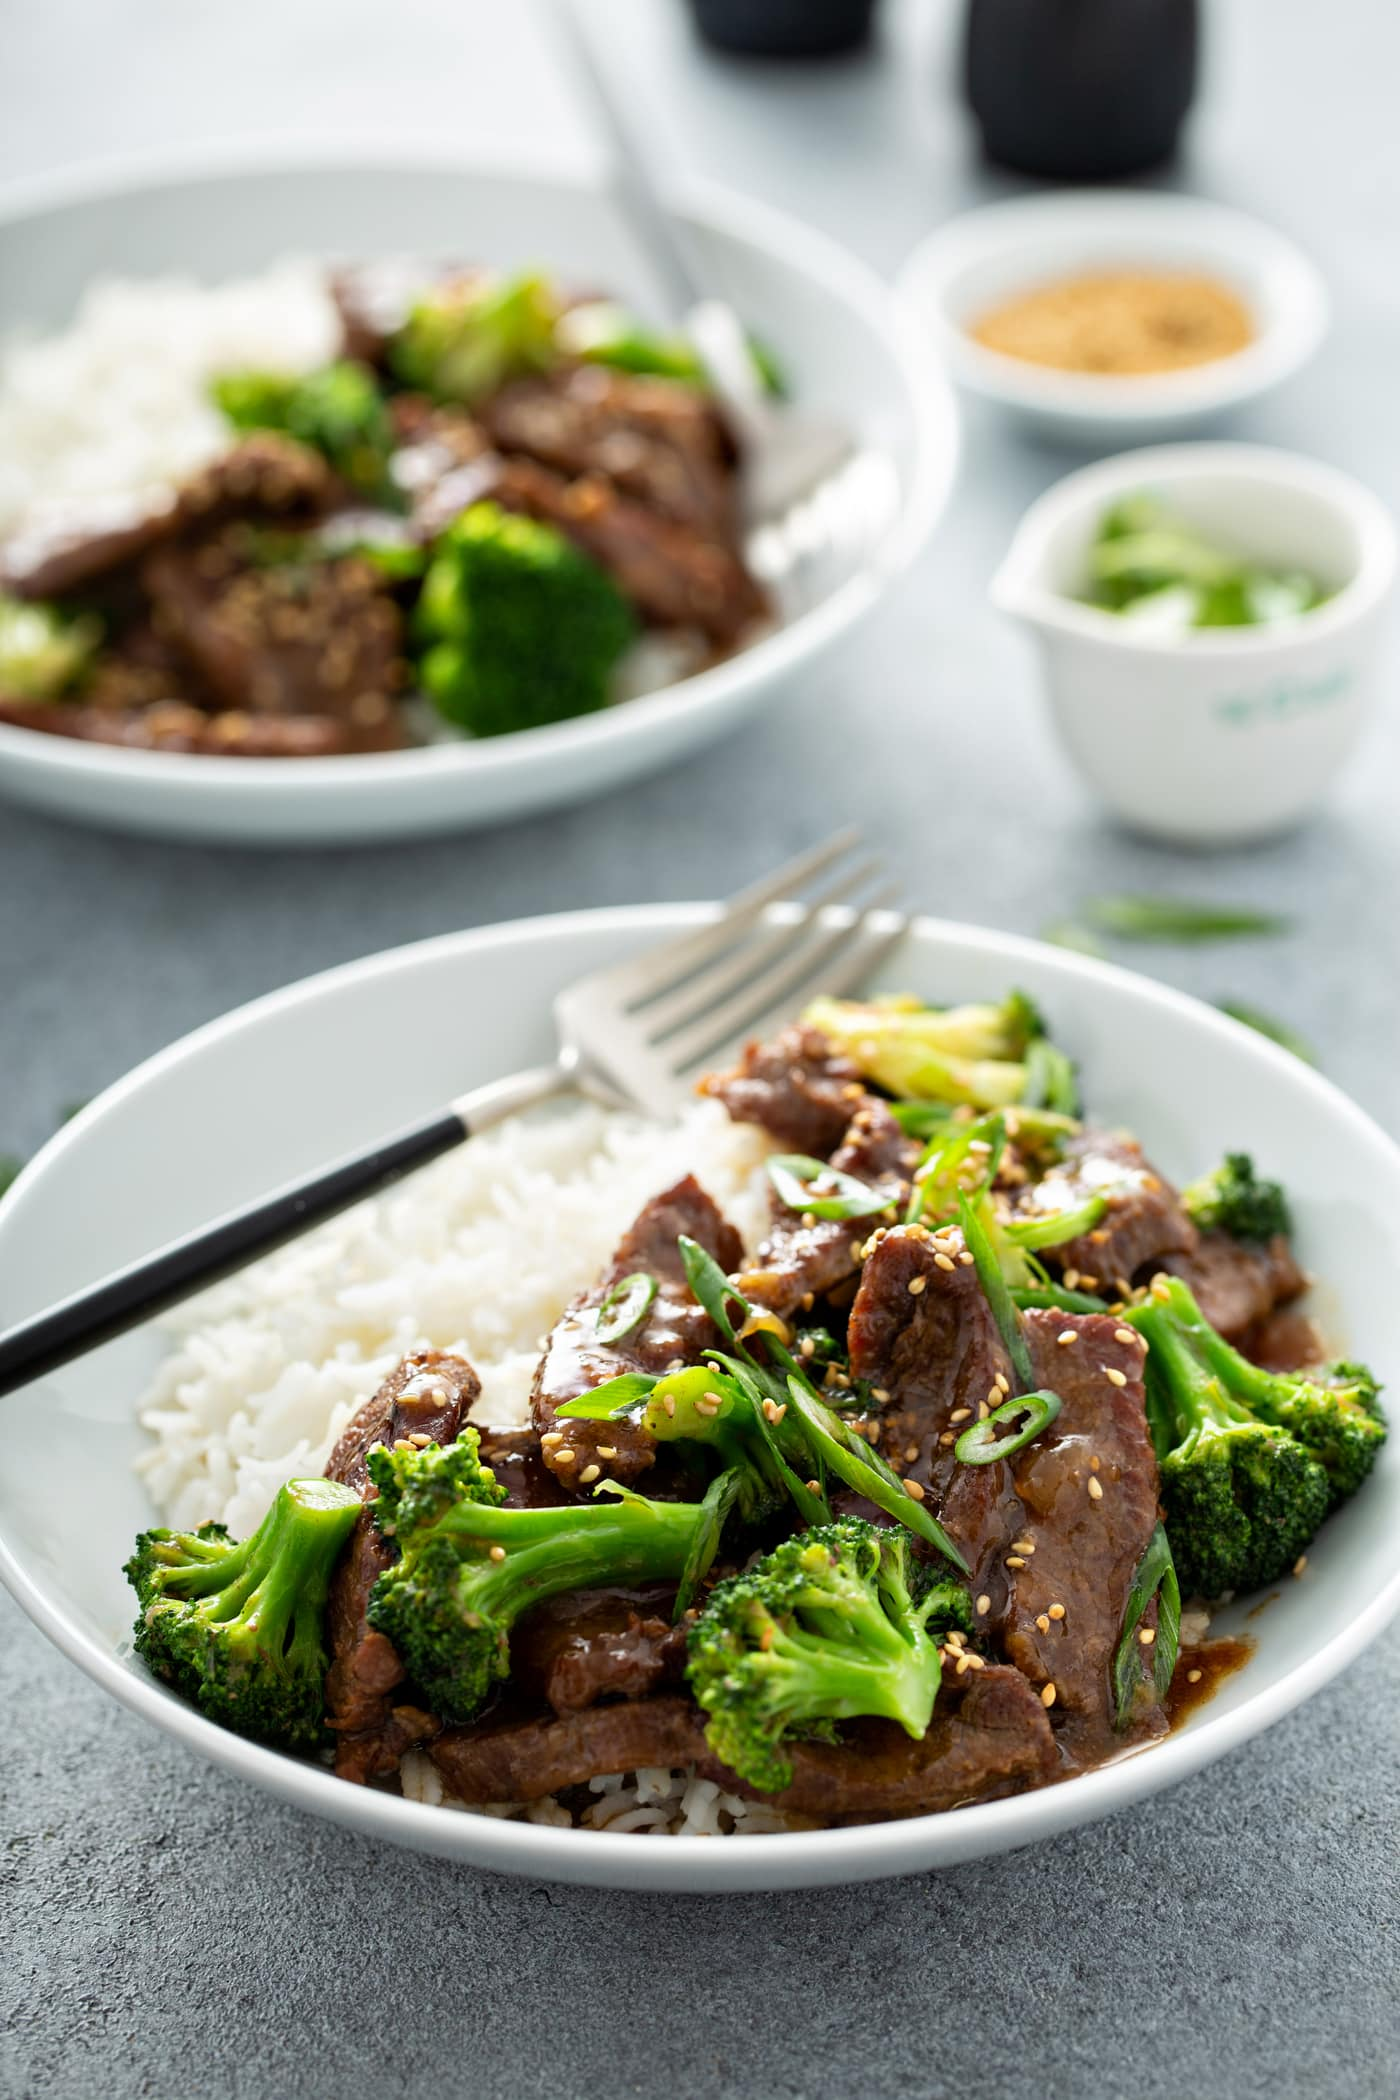 A photo of a bowl of beef and broccoli with another bowl of the same dish in the background.